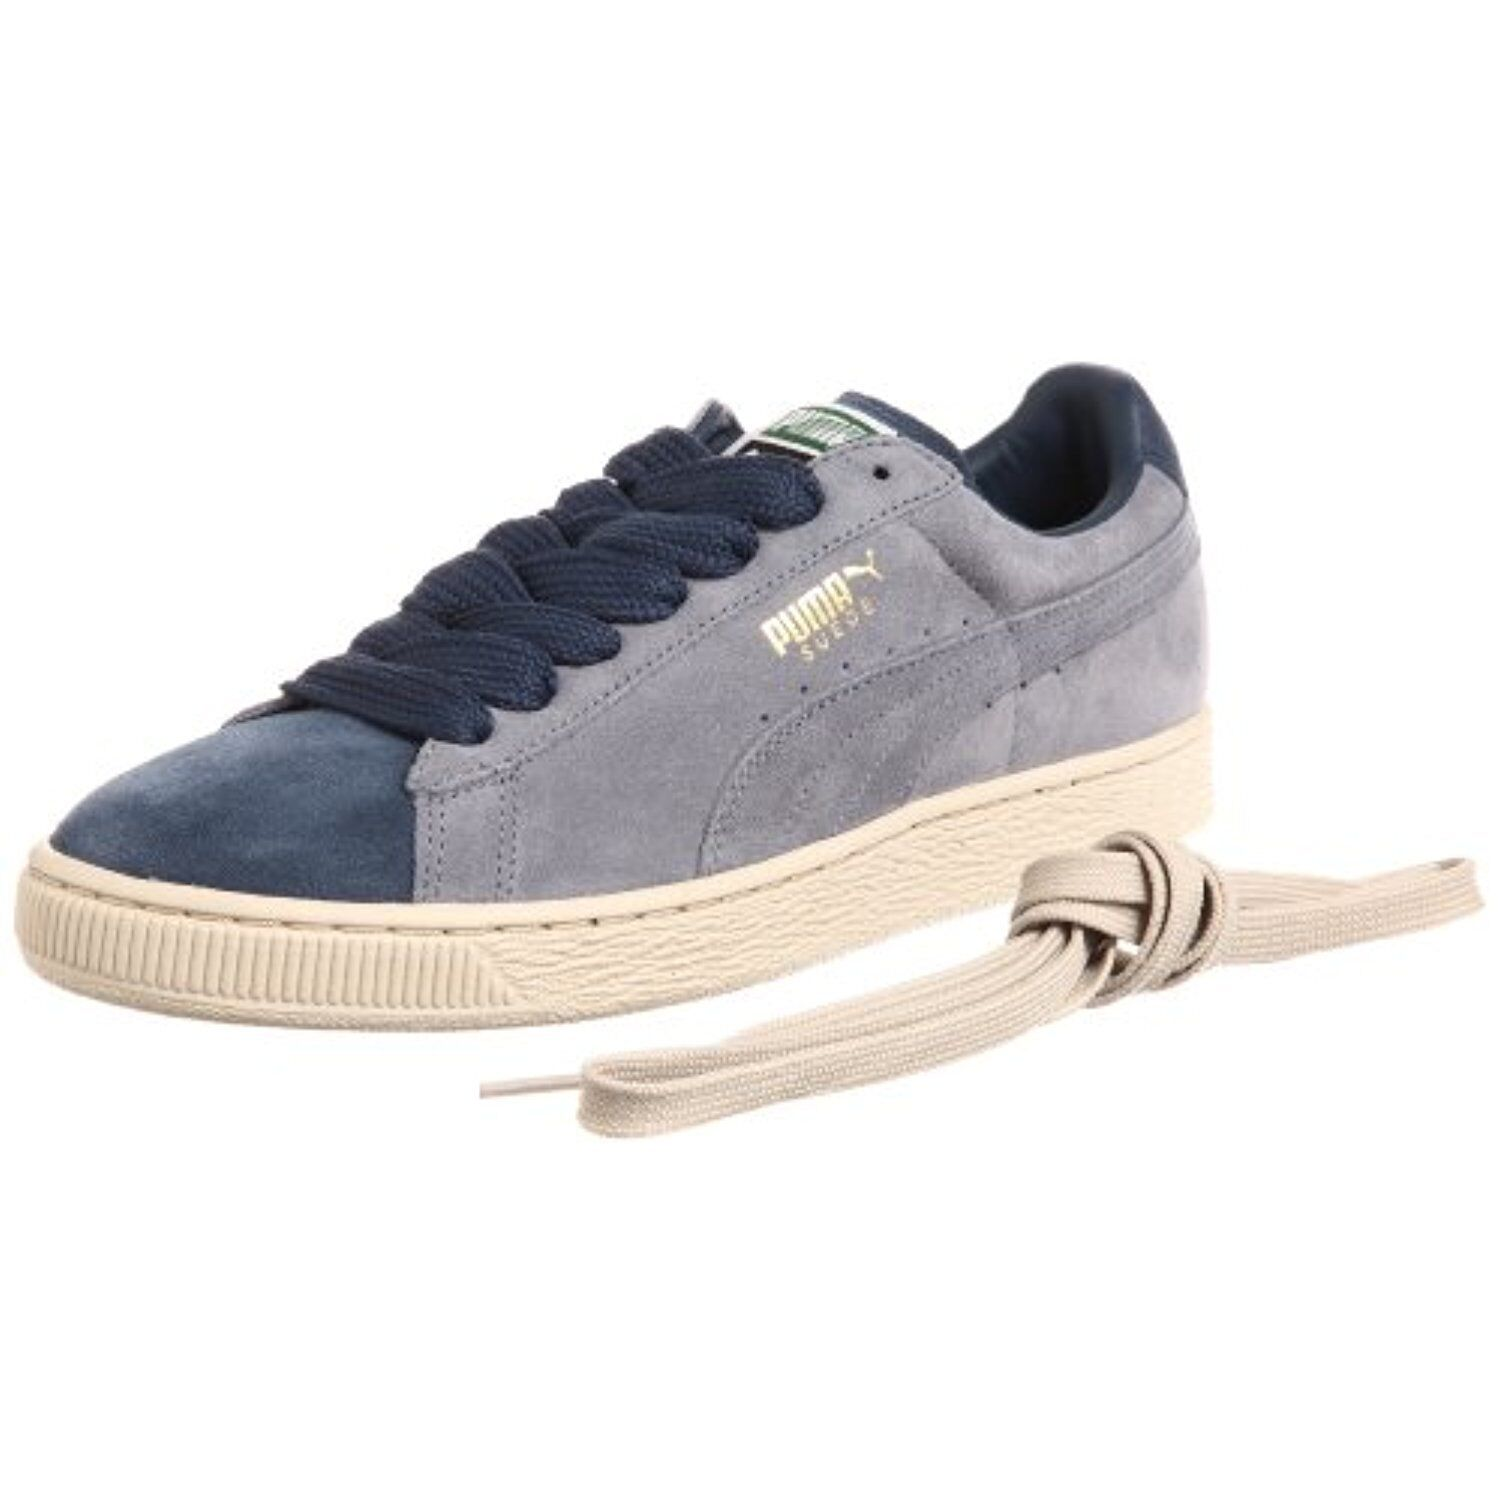 BRAND NEW  Puma Suede Classic Eco Leisure Sneaker Chaussures (352634-37),